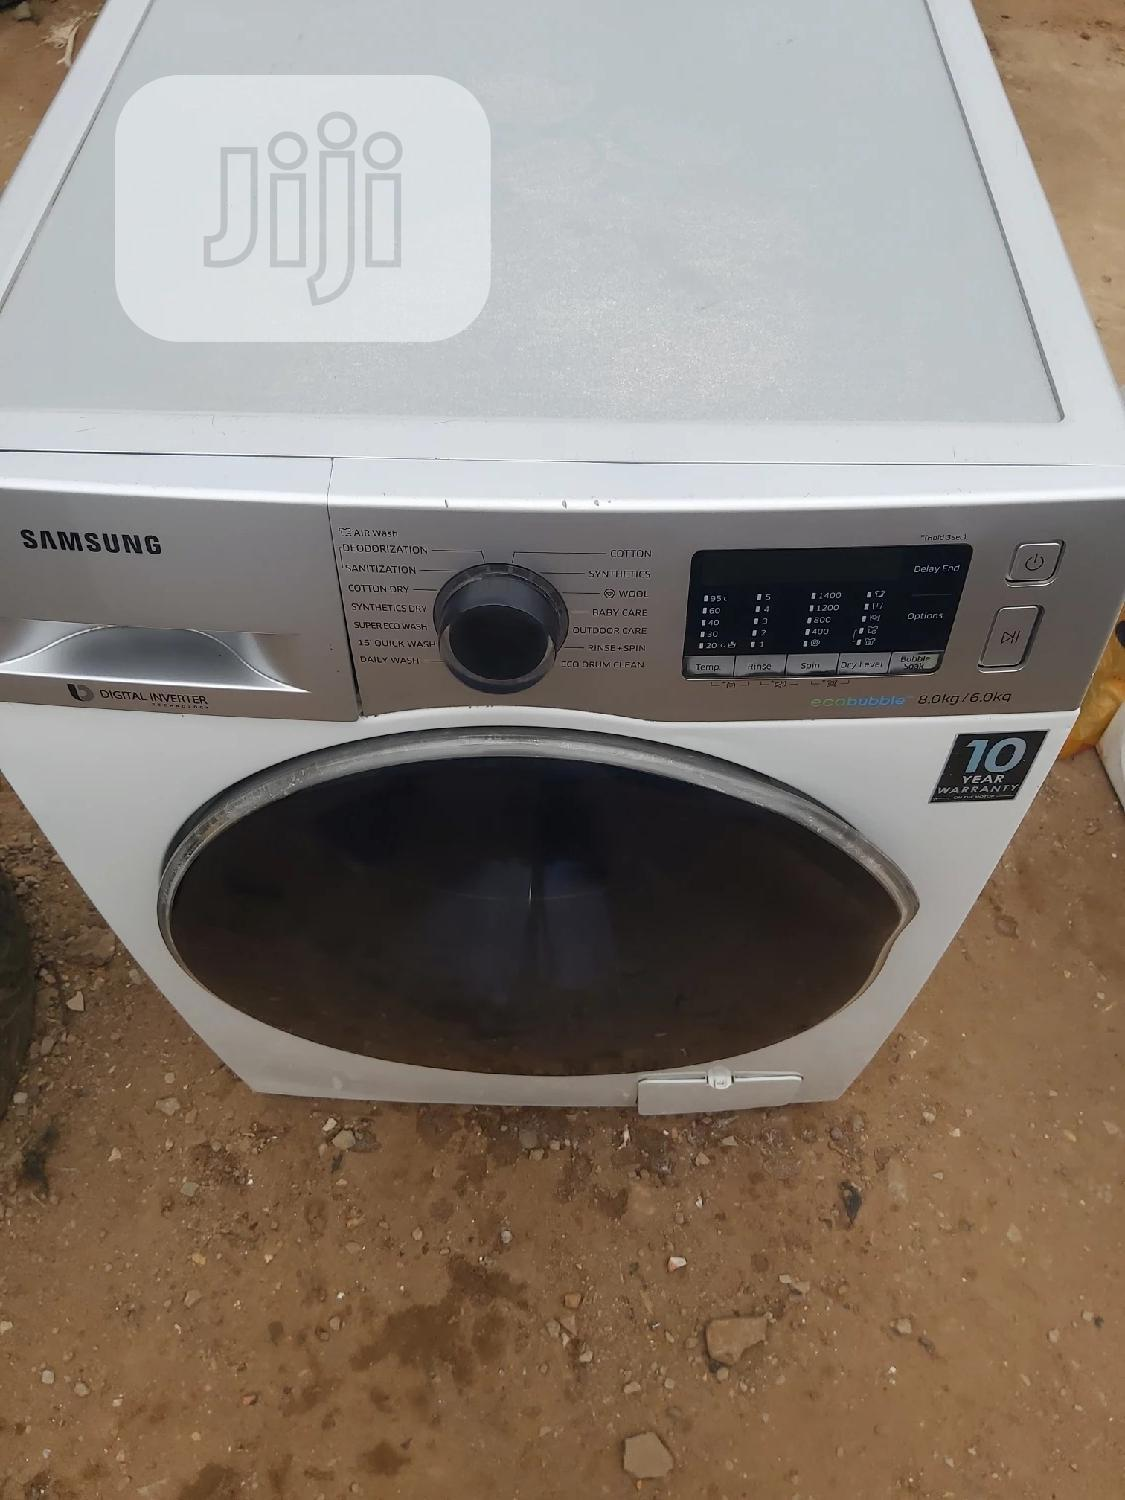 SAMSUNG 8kg+6kg Washer And Dryer | Home Appliances for sale in Ikorodu, Lagos State, Nigeria